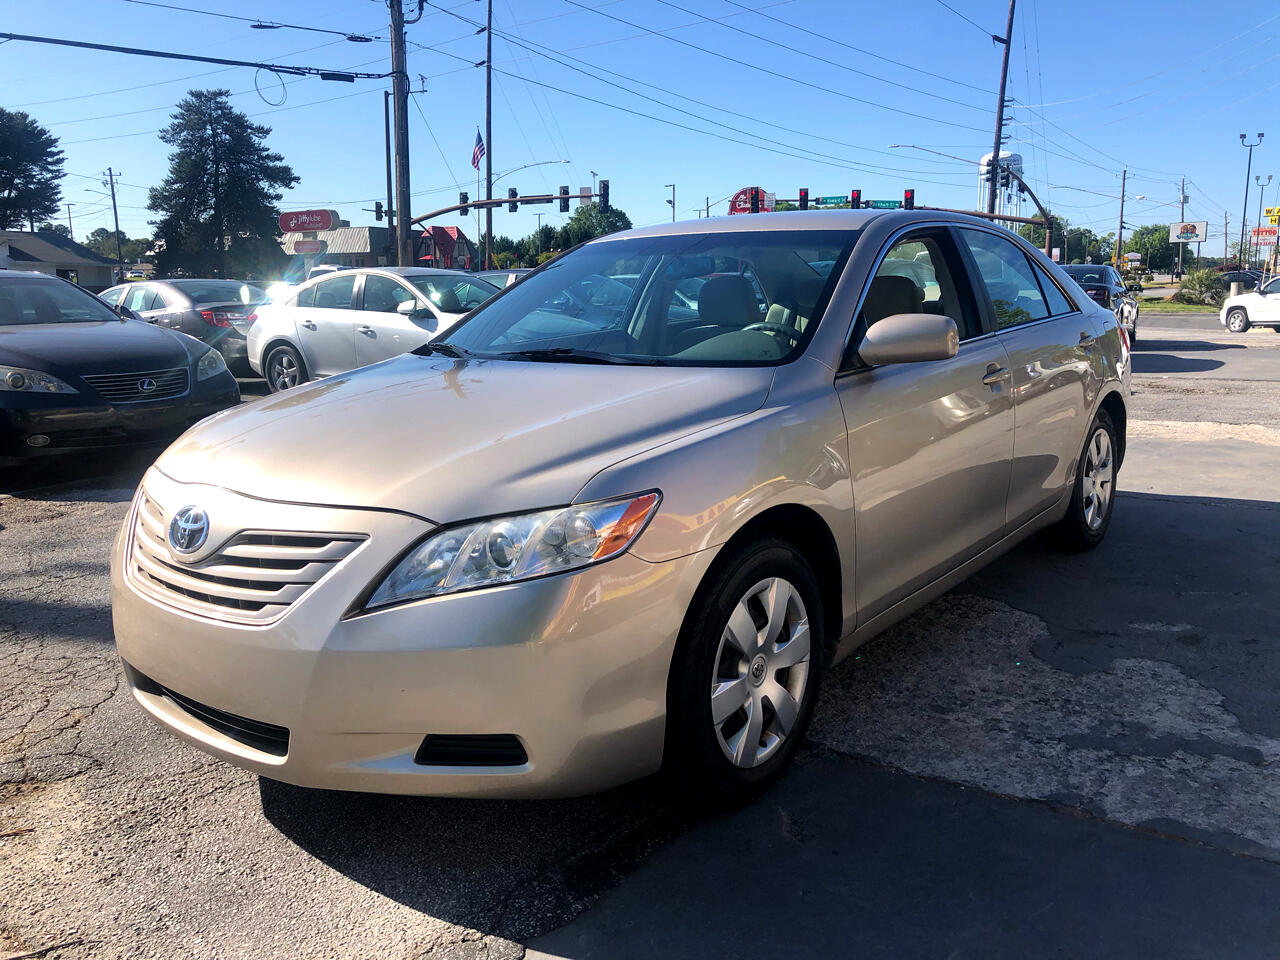 Toyota Camry 4dr Sdn I4 Auto LE (Natl) 2009